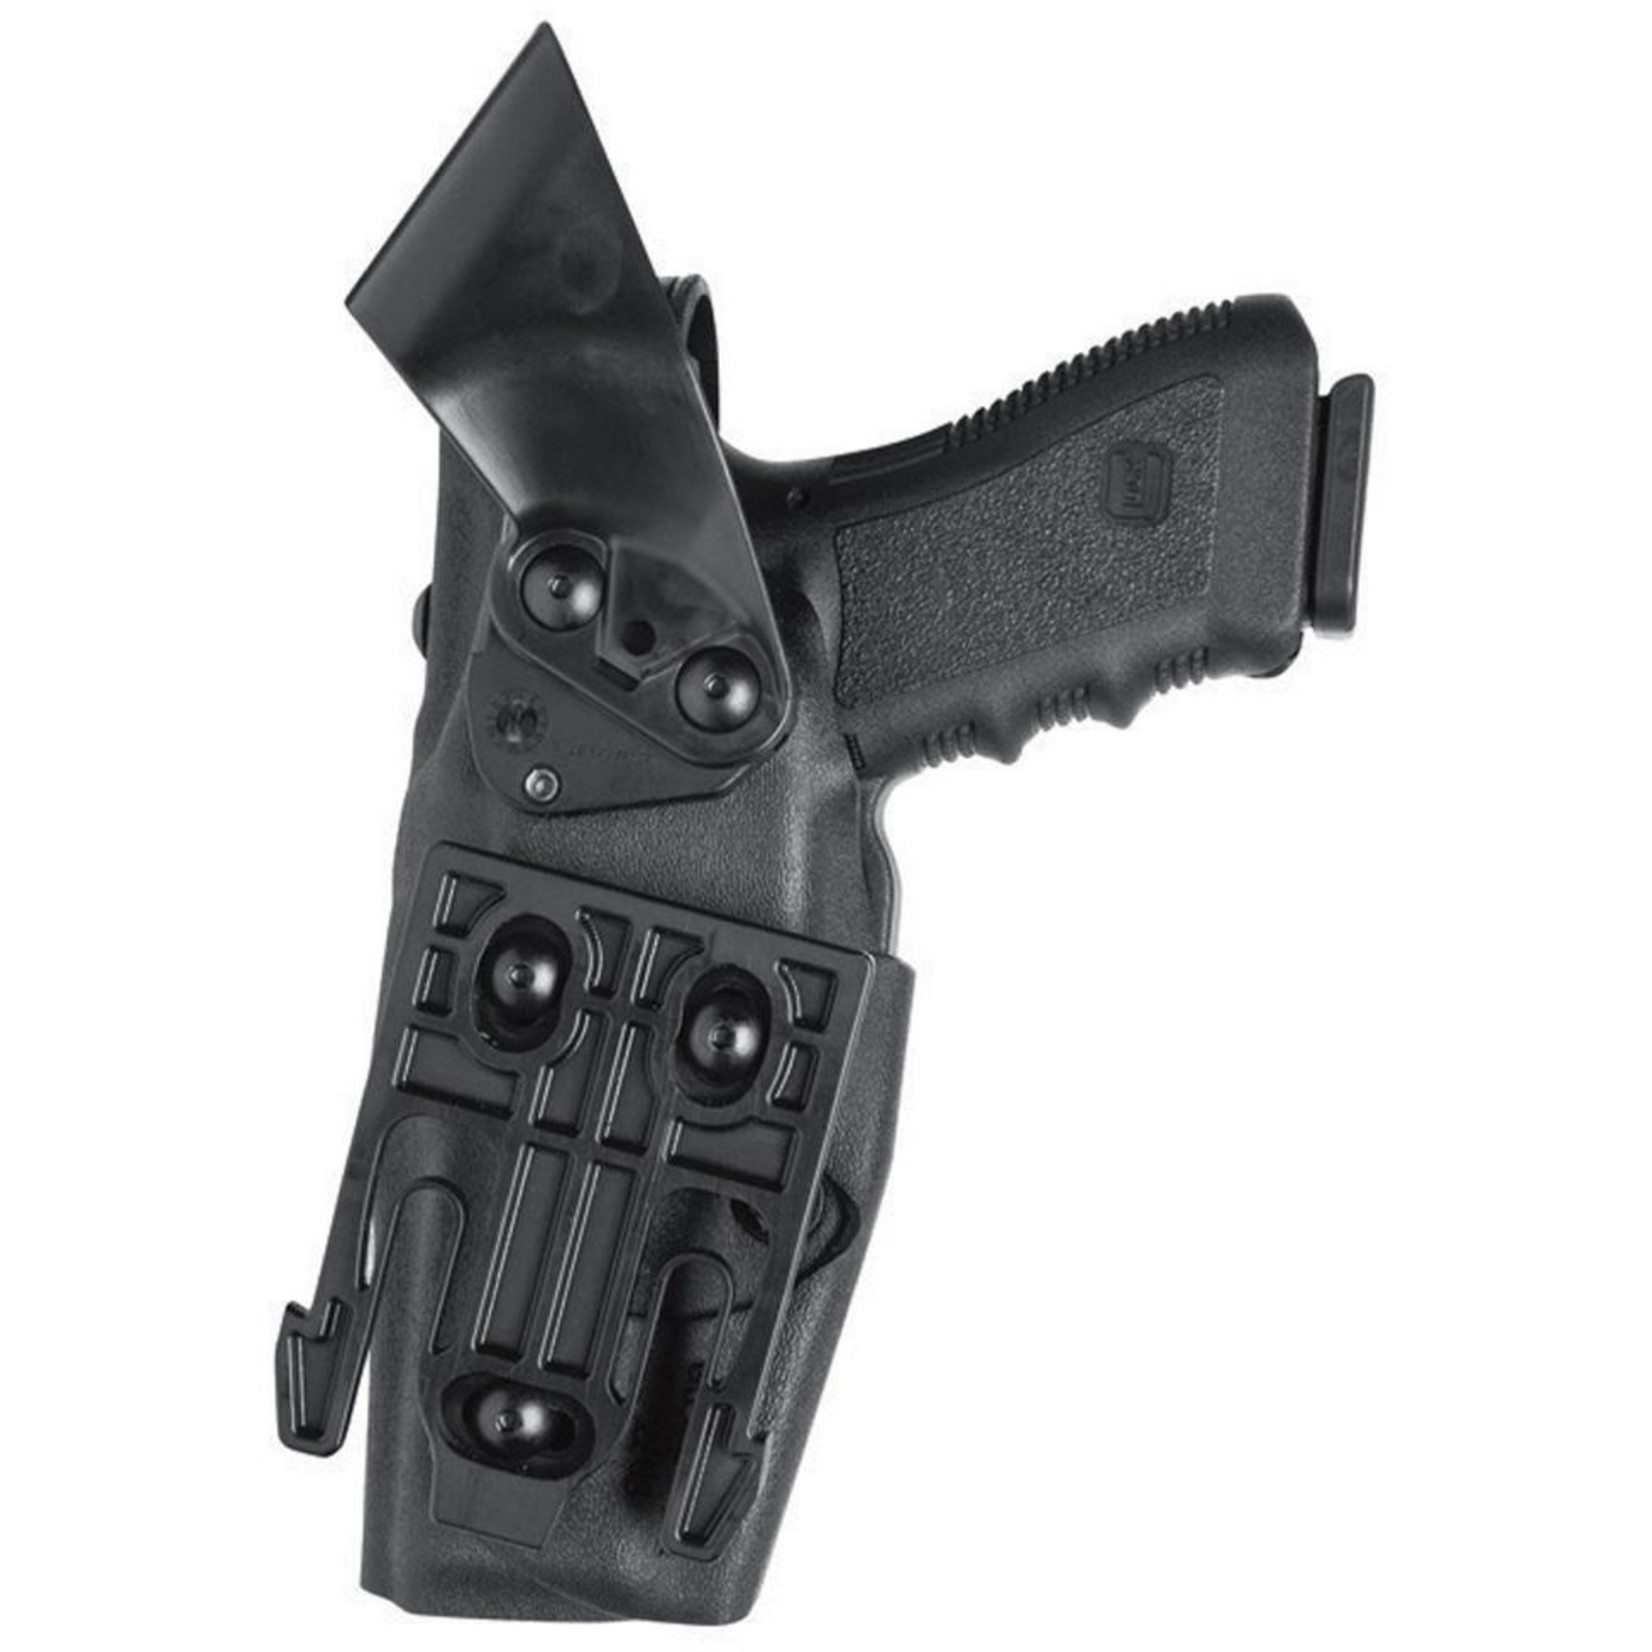 SAFARILAND MODEL 6004-19 QUICK LOCKING SYSTEM HOLSTER FORK (QLS 19)